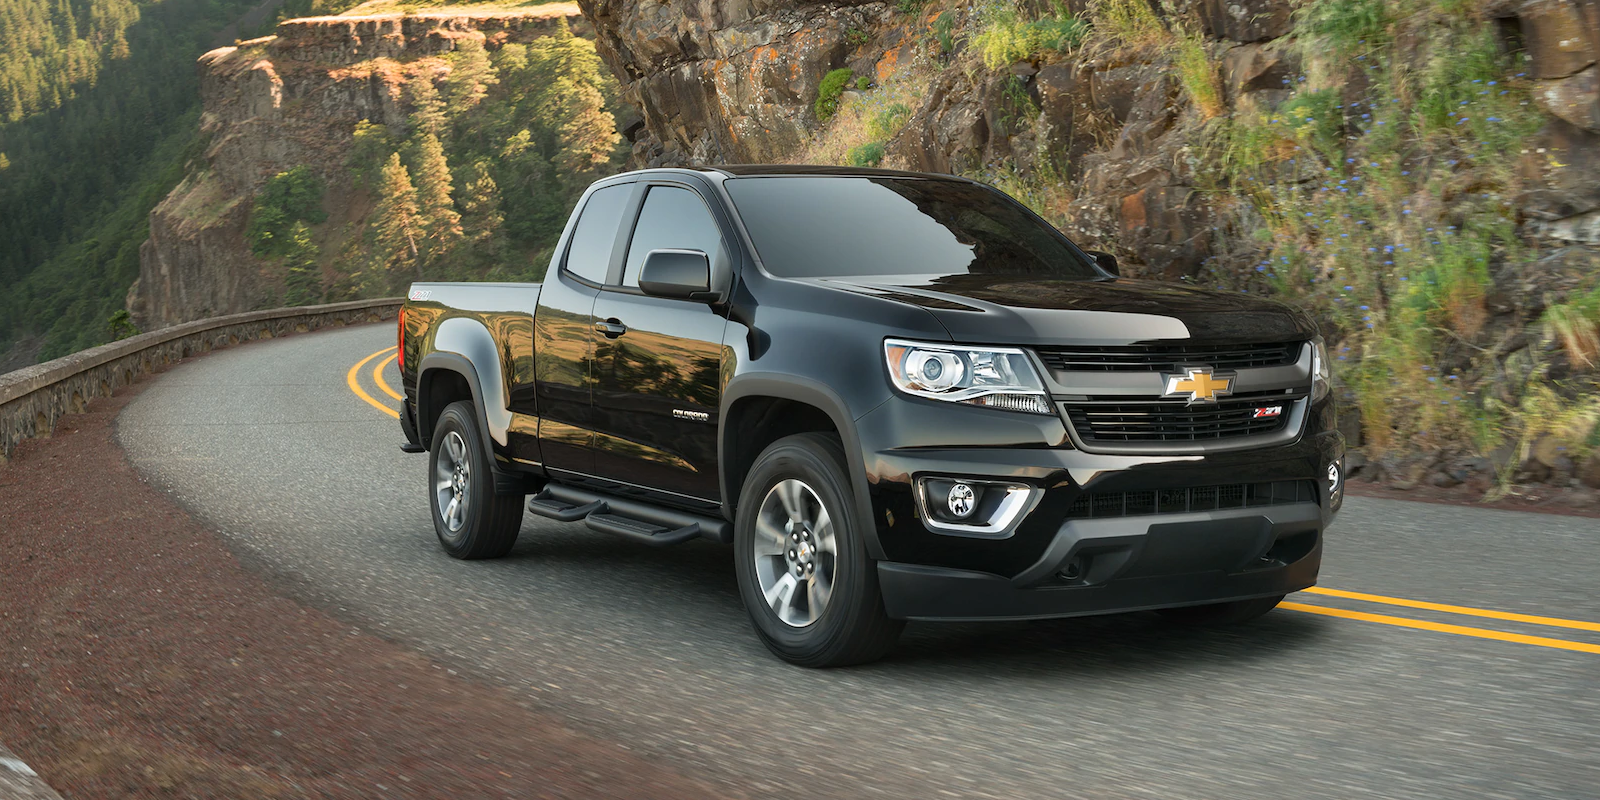 2019 Chevrolet Colorado Black Exterior Front View Picture.png